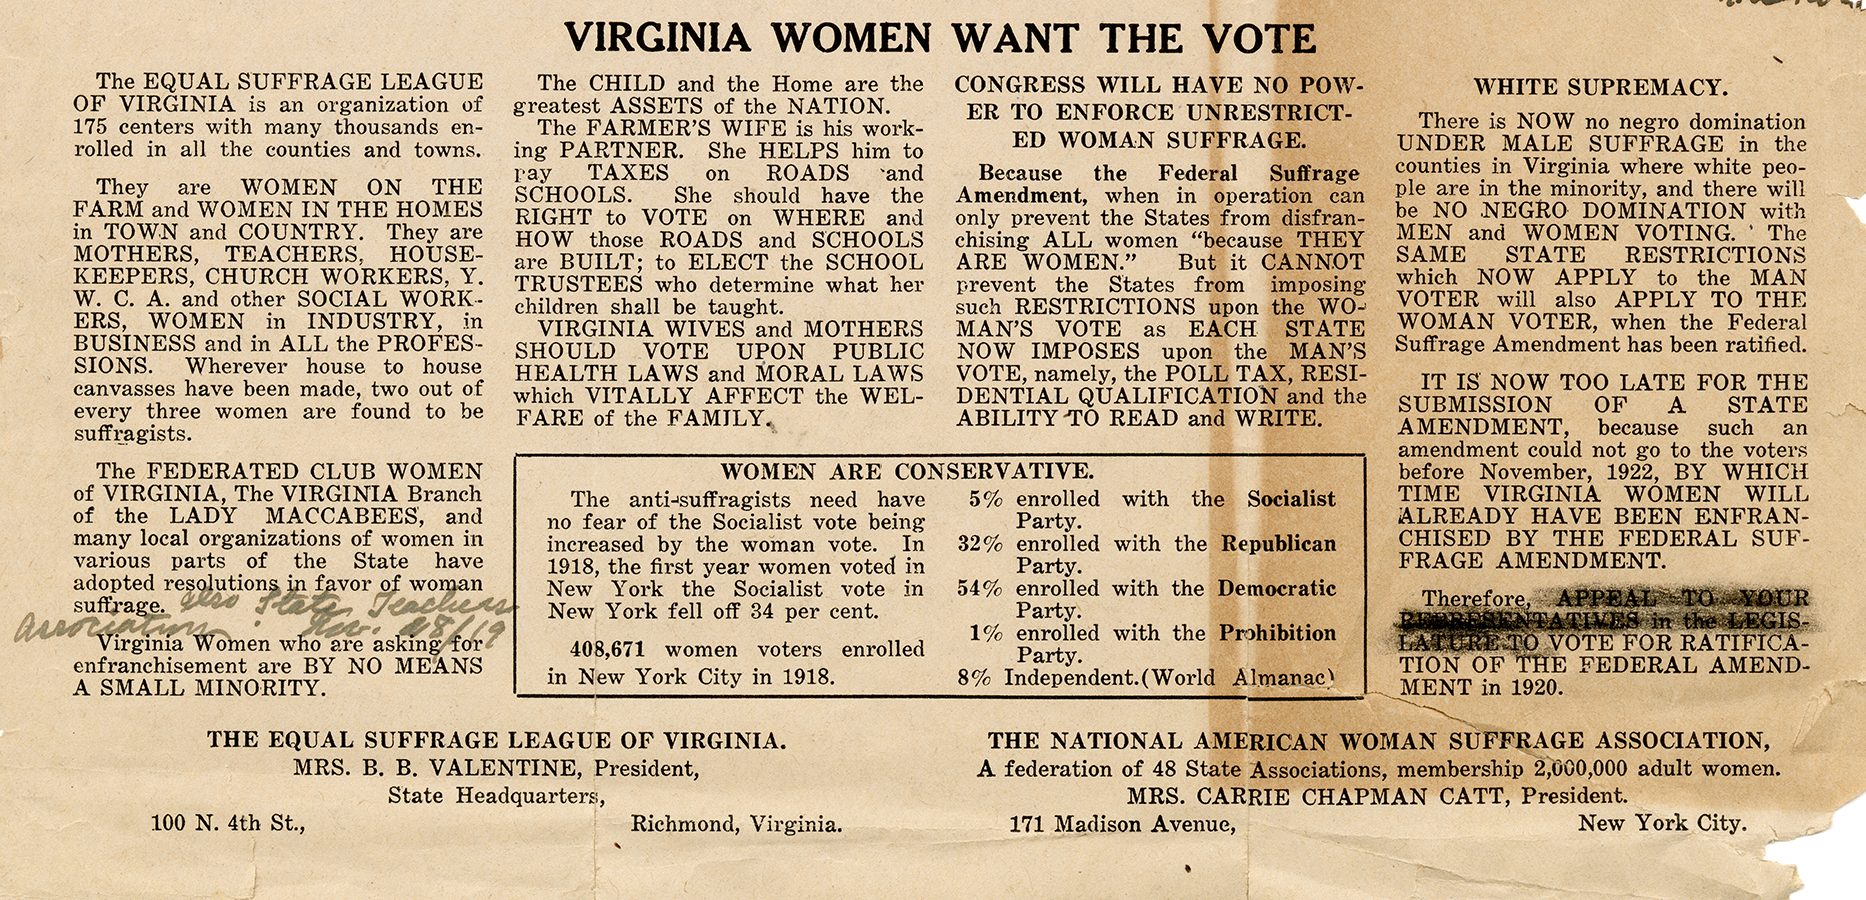 VCU_M 9 Box 233 ESL broadside ca 1919 map of states and suffrage detail rsz.jpg